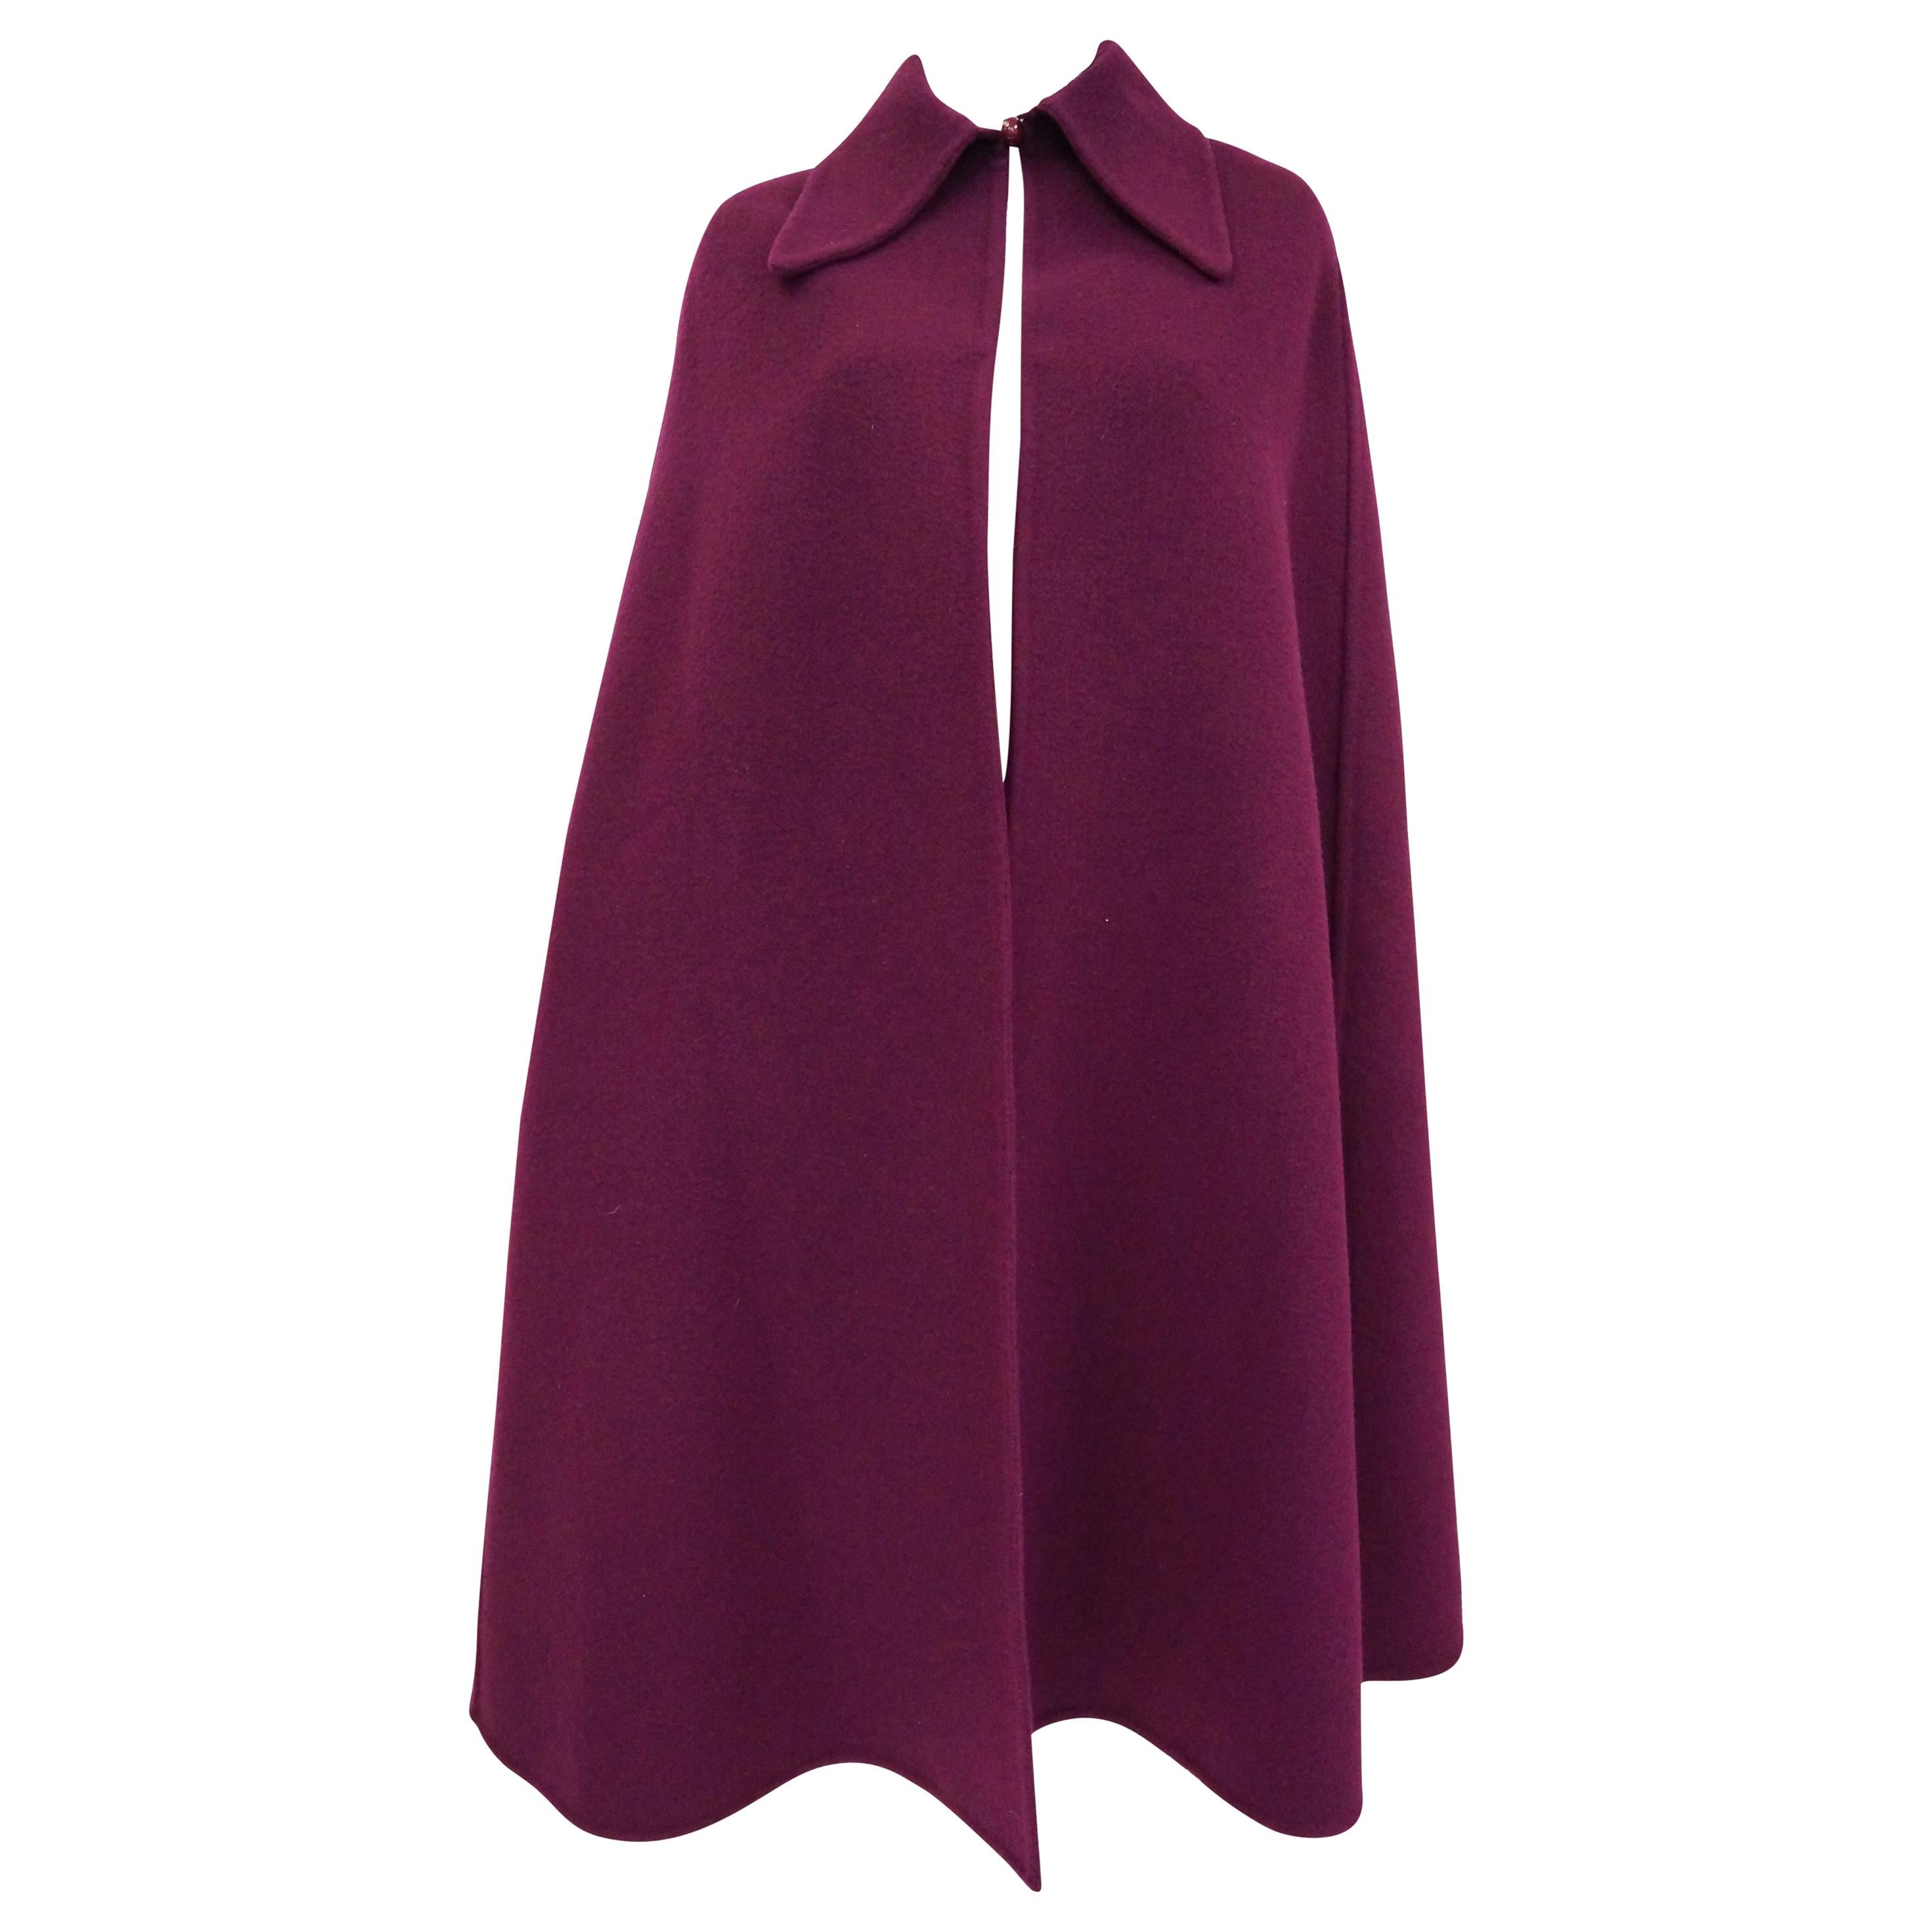 Christian Dior Marc Bohan Violet Wool Cape With Croquis and Photo, 1971